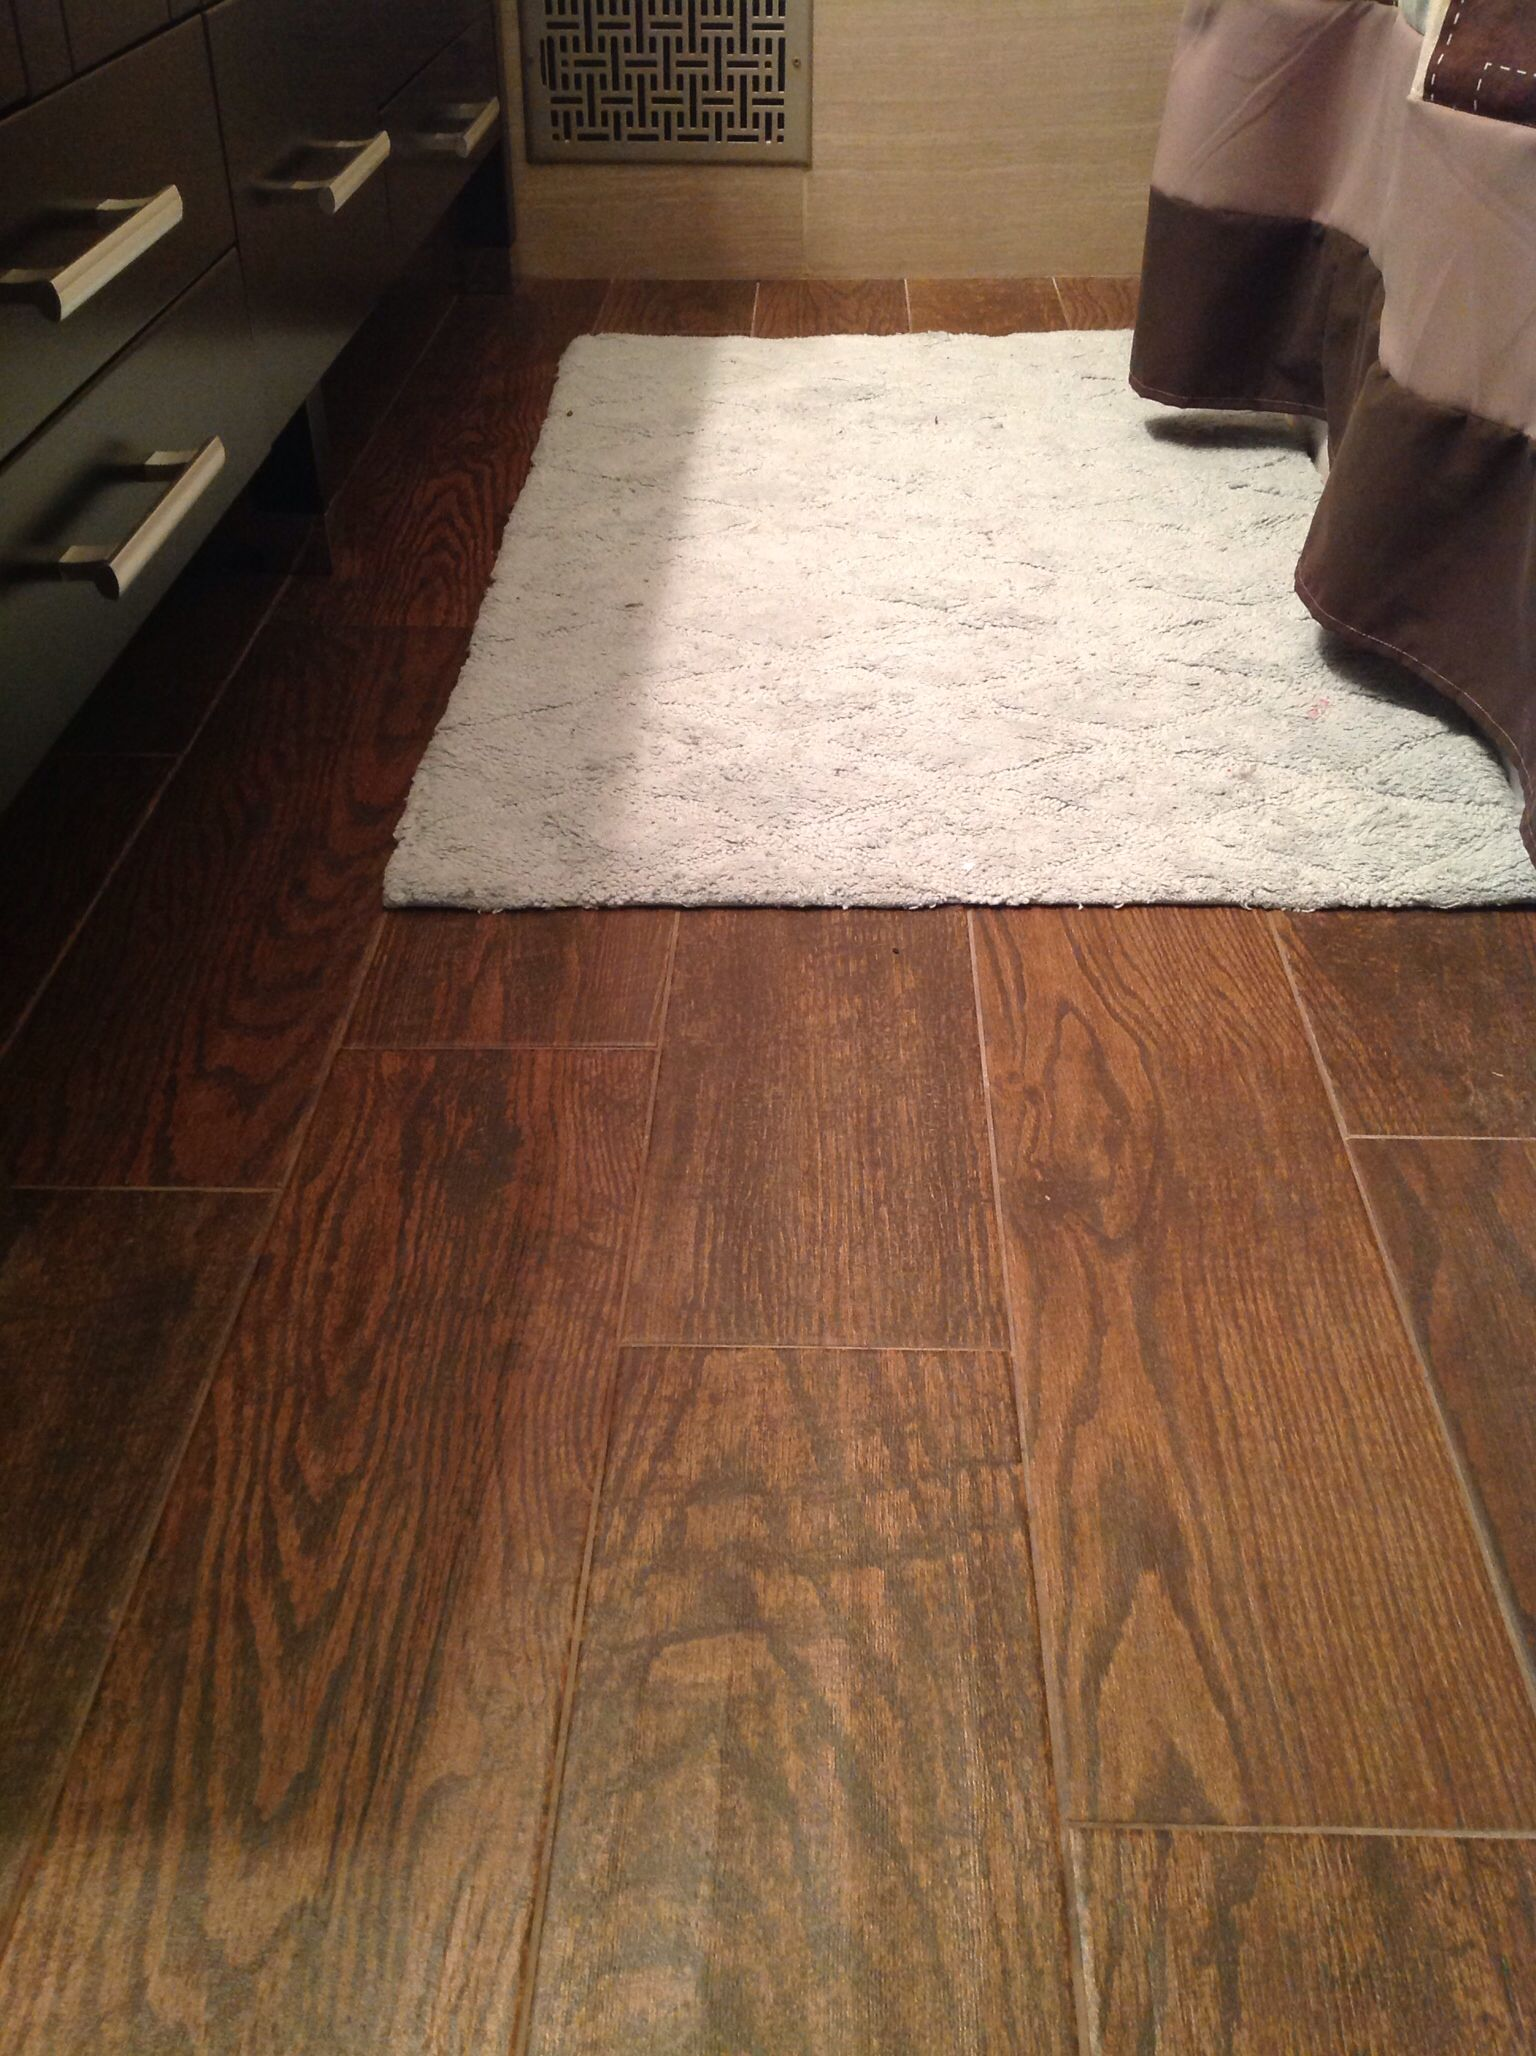 Lowes Ceramic Tile Flooring >> Tile flooring that looks like hardwood. You can find it at ...